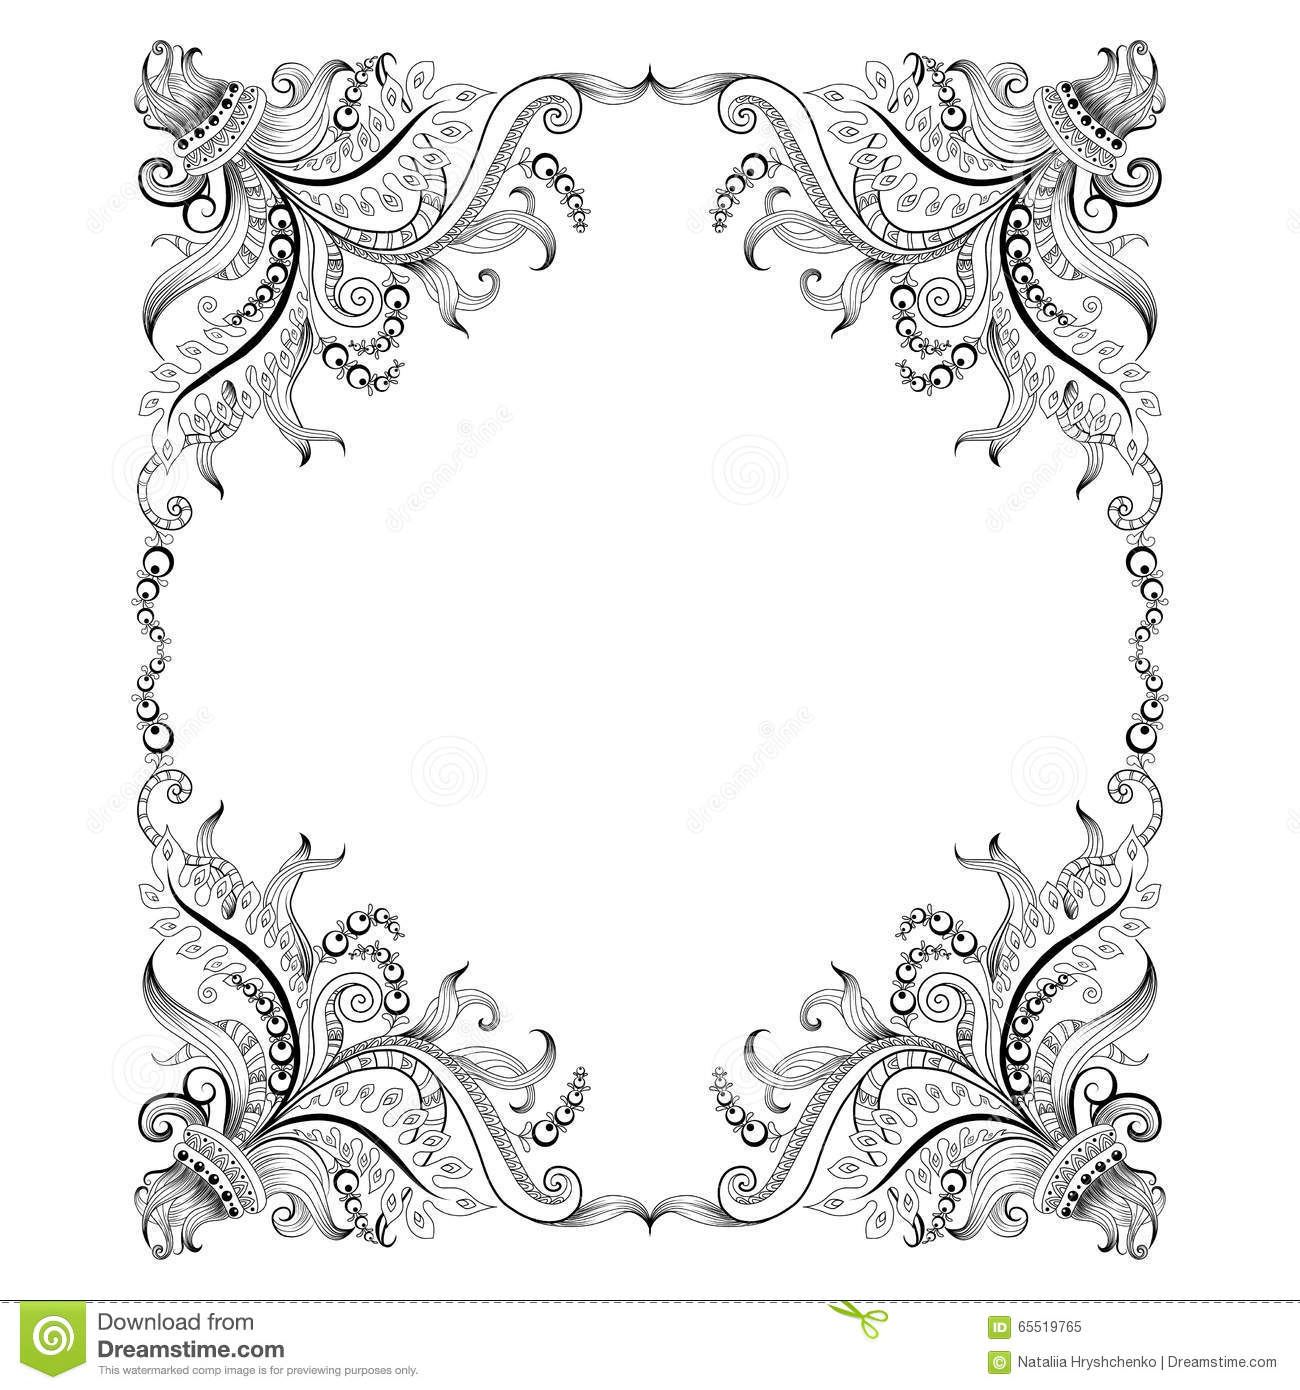 drawing frame designs stock illustration frame hand drawing decorative ornaments graphic floral design image65519765